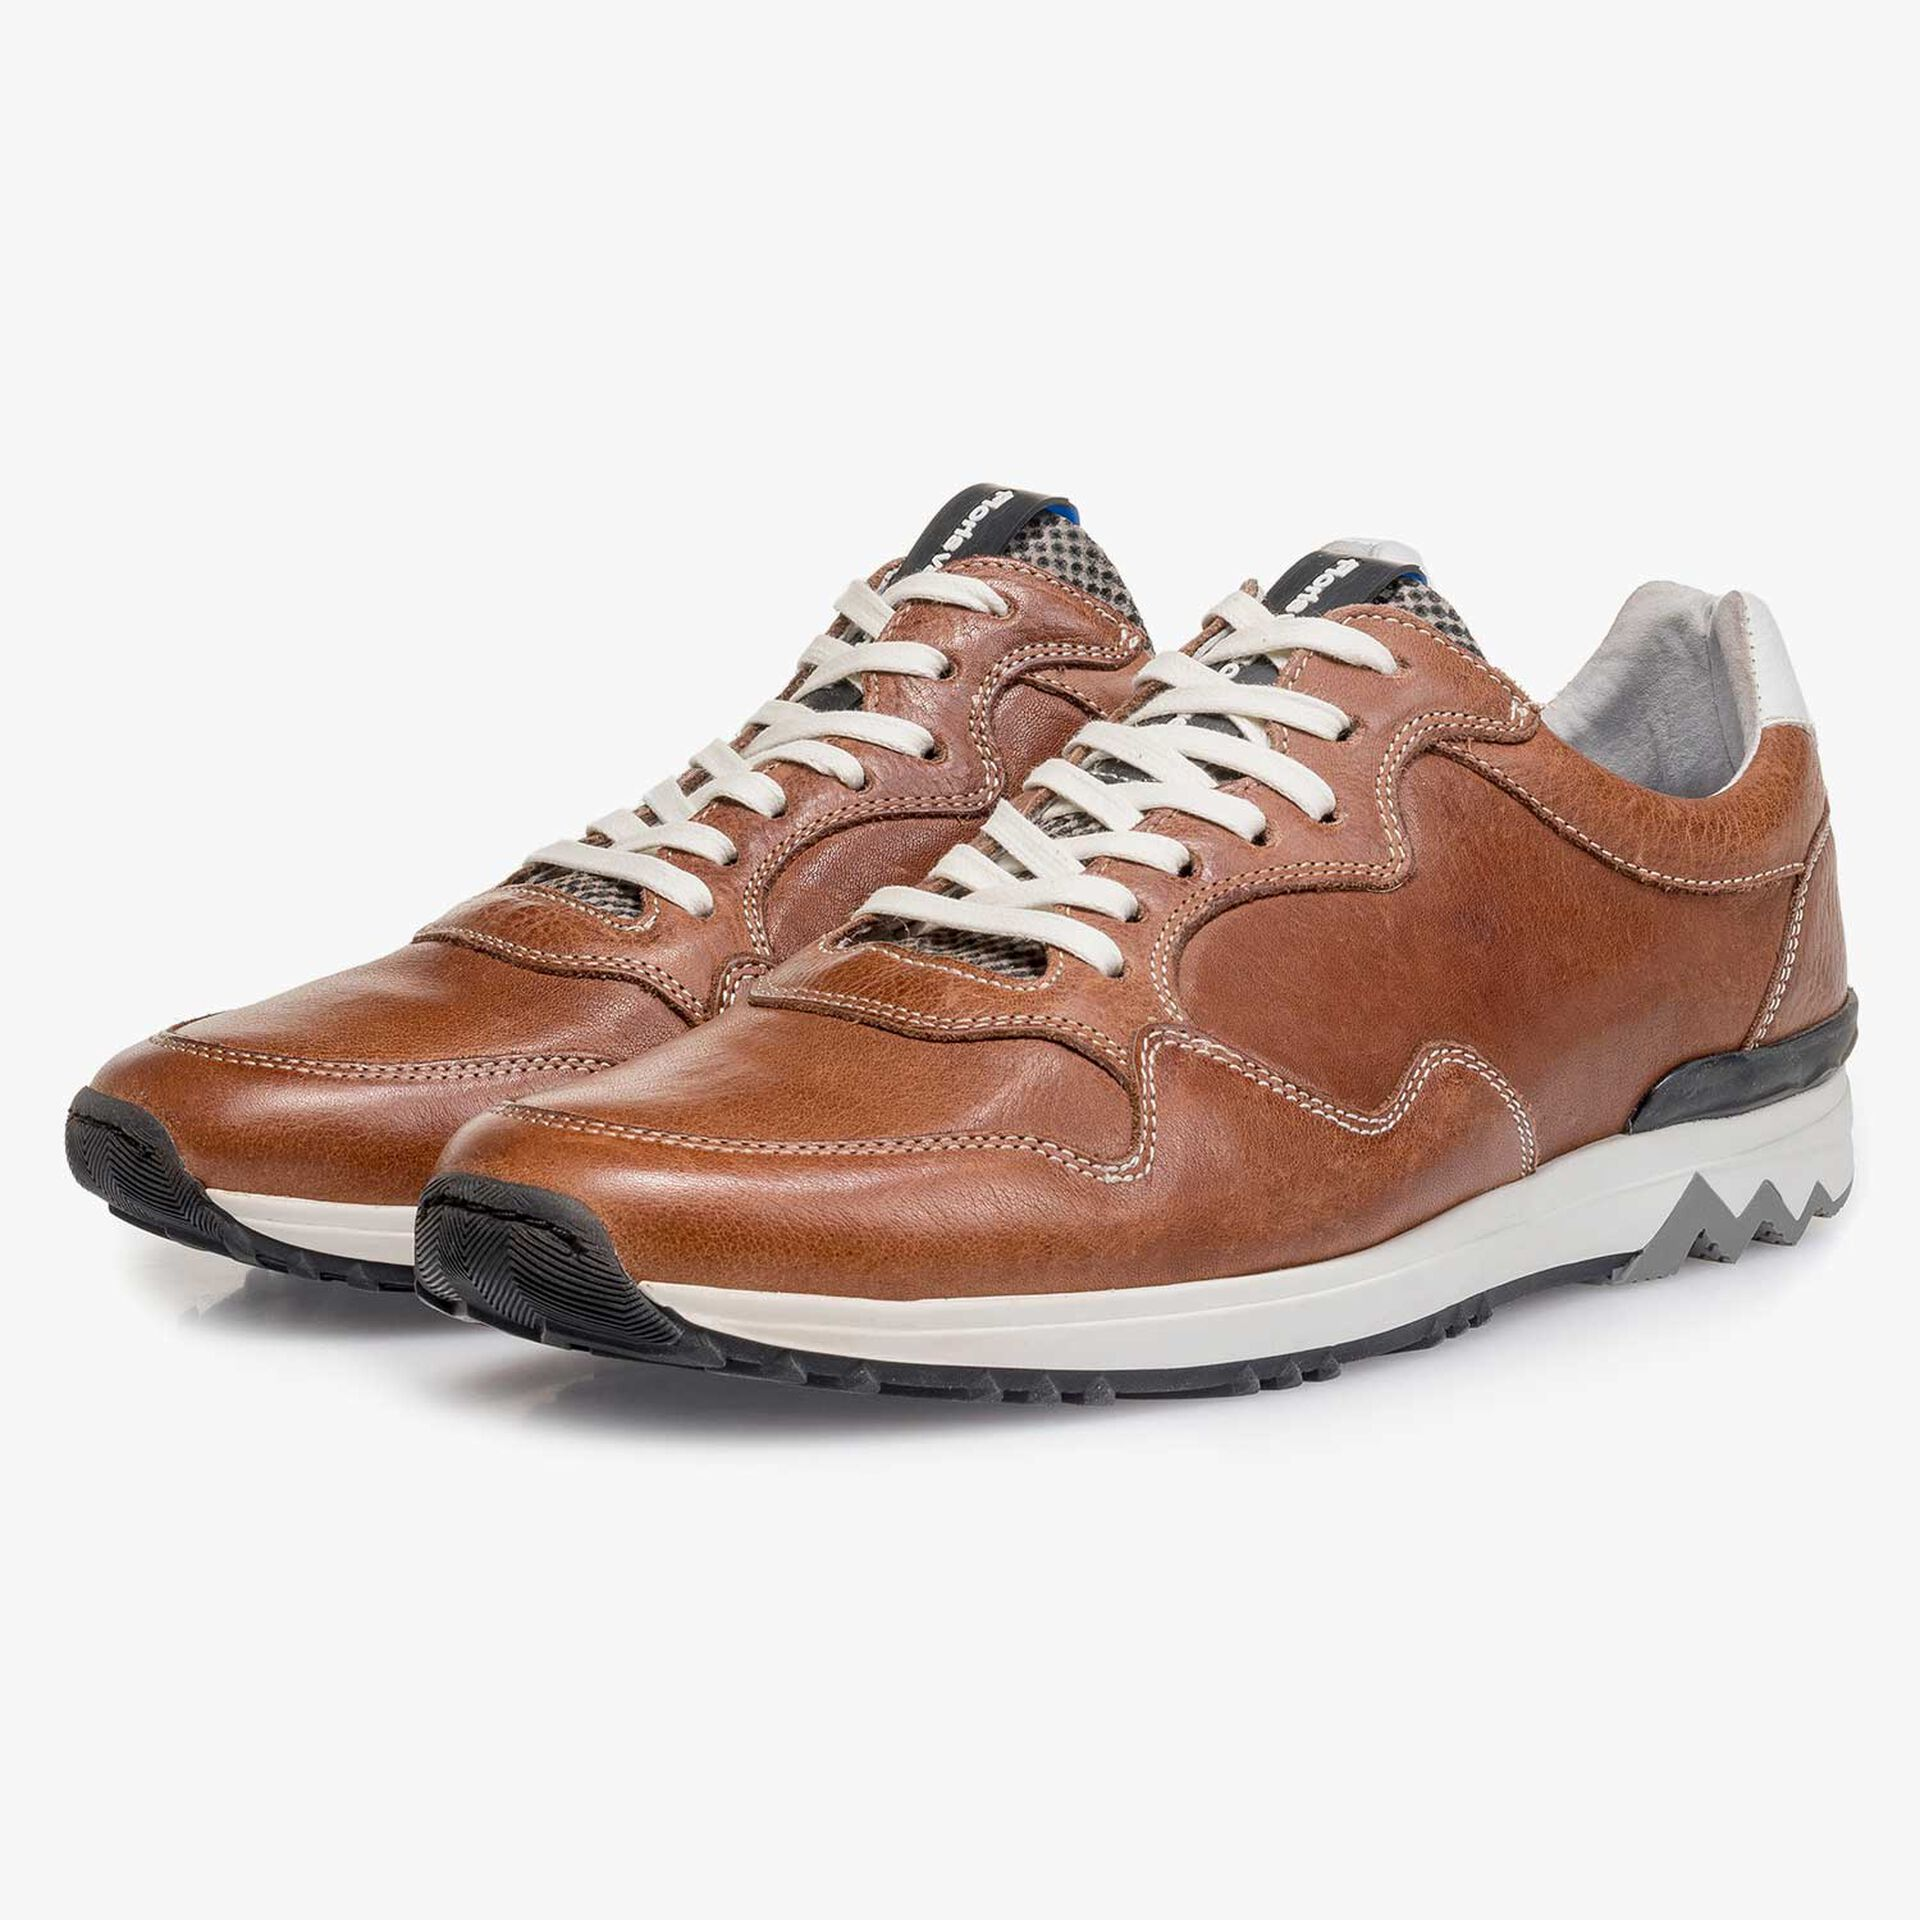 Cognac-coloured leather sneaker